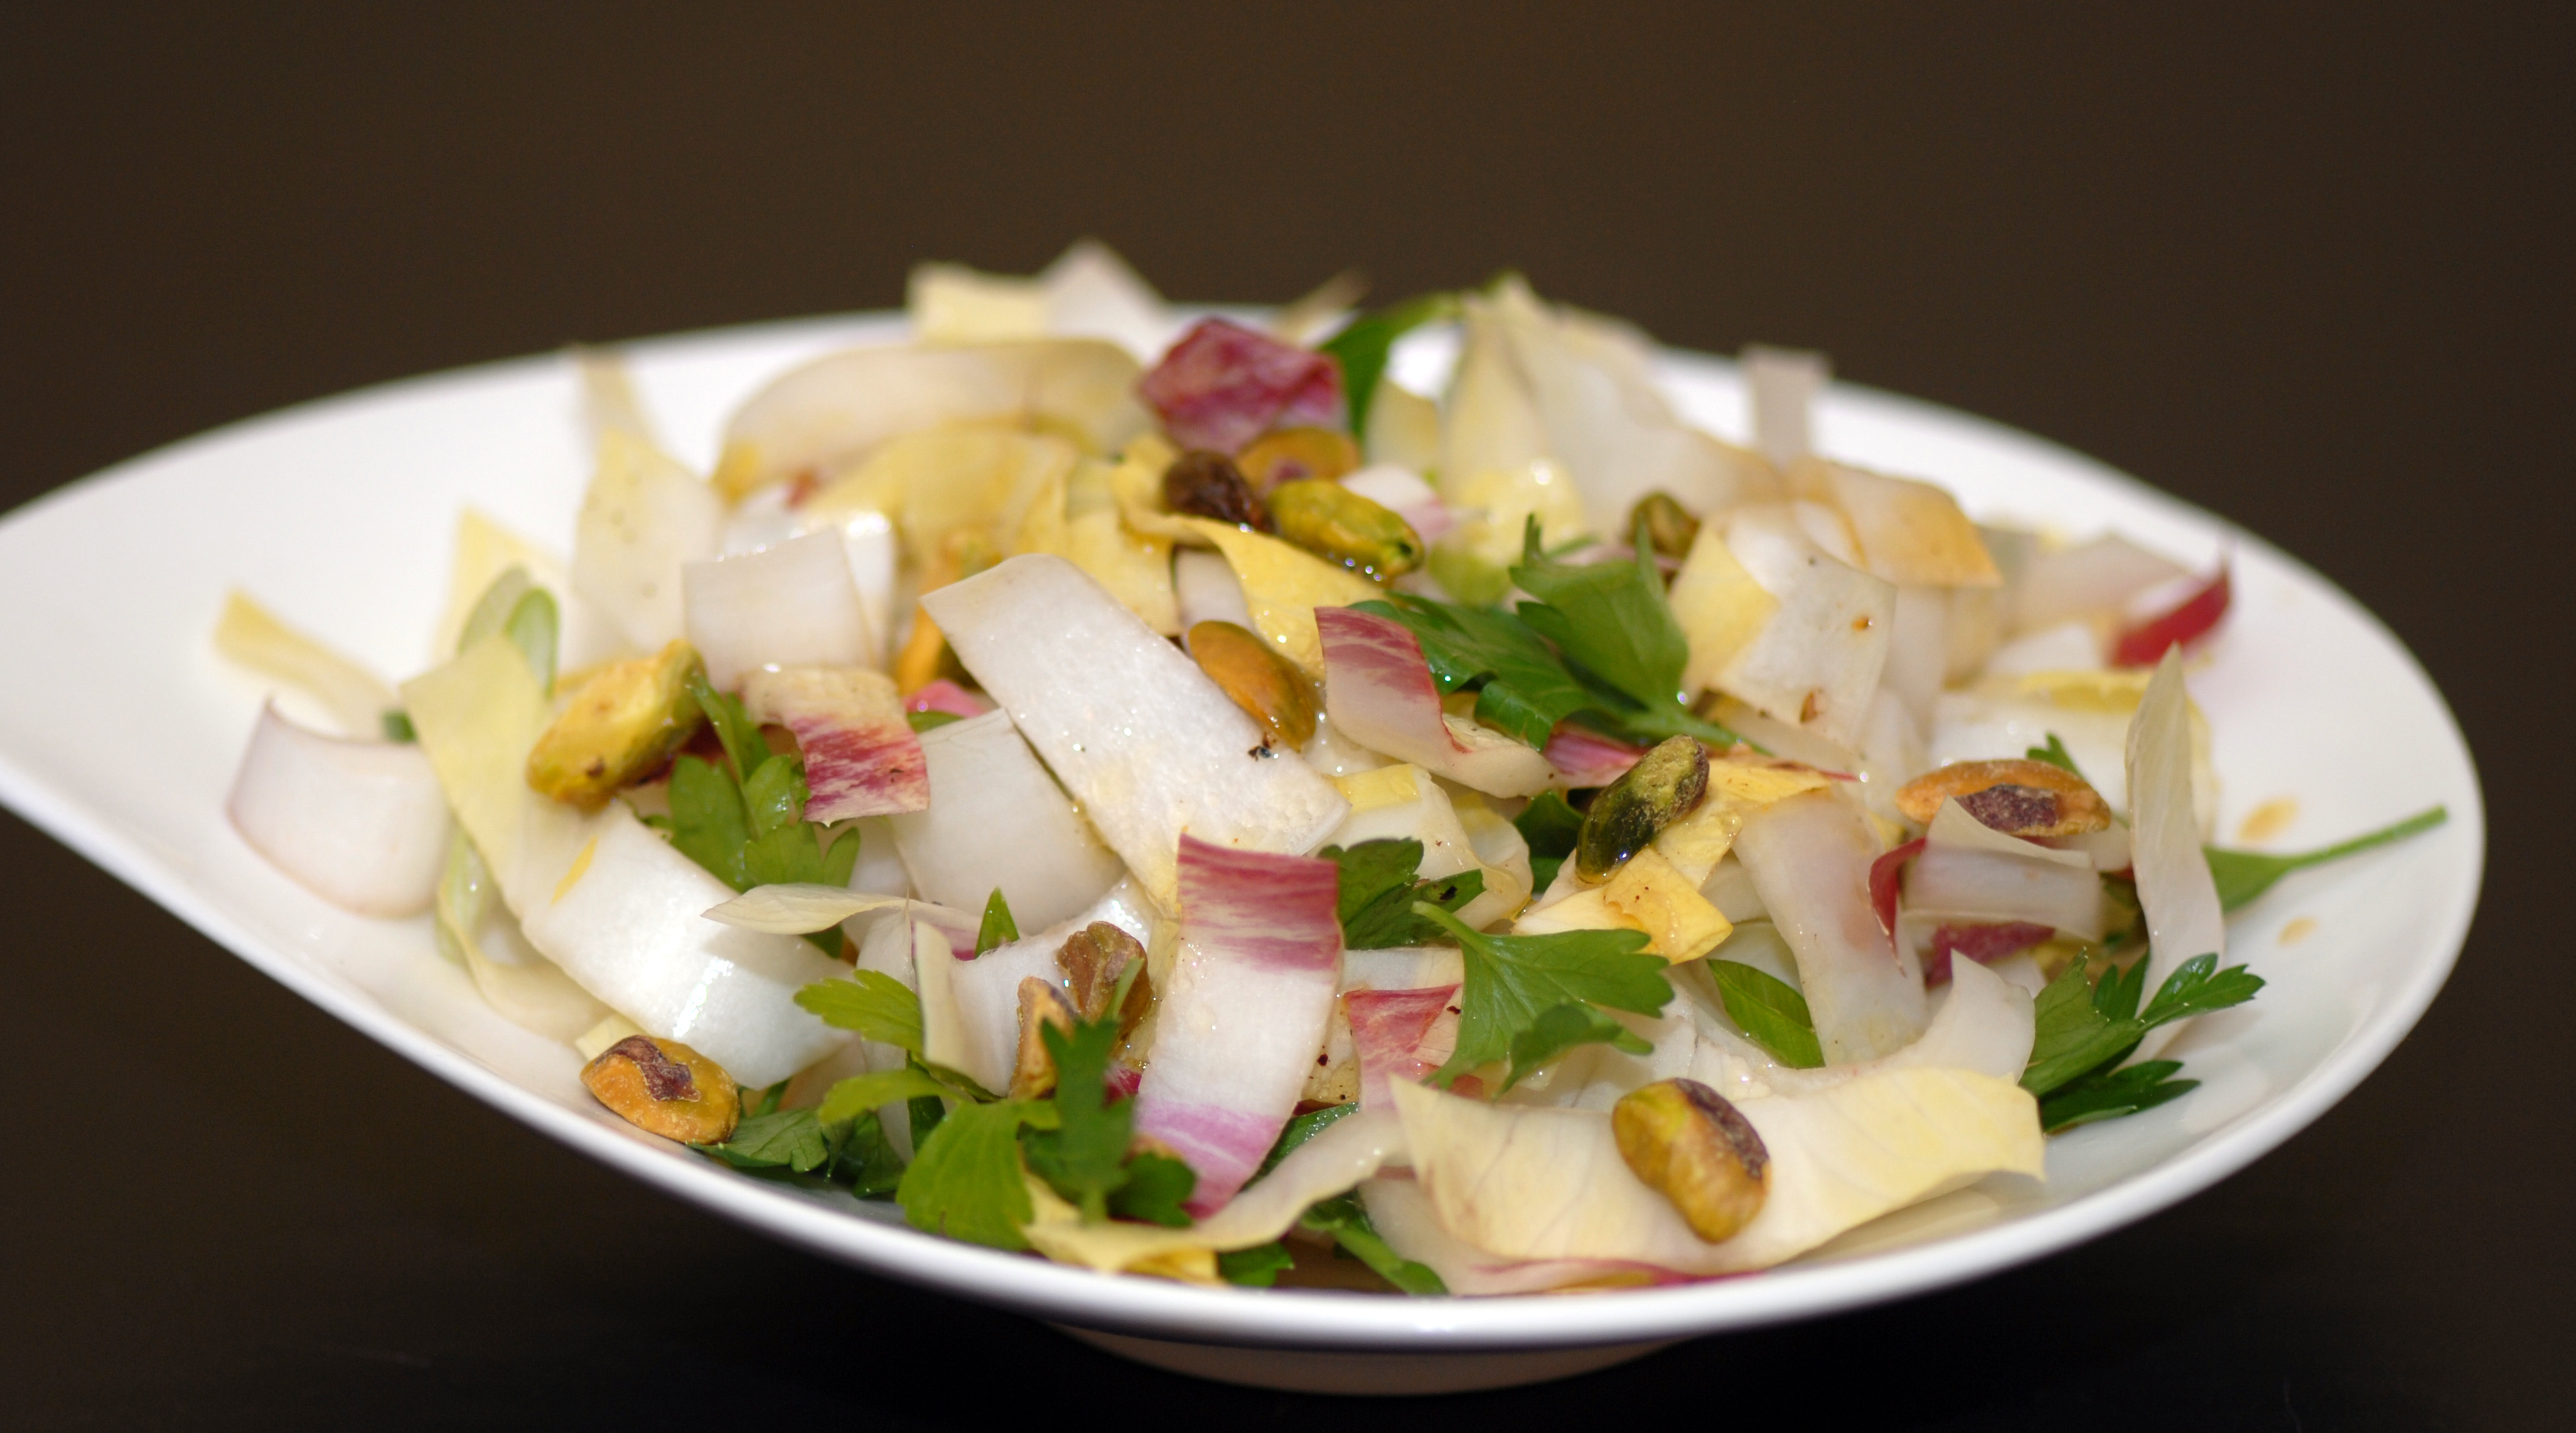 Endive and Pistachio Salad